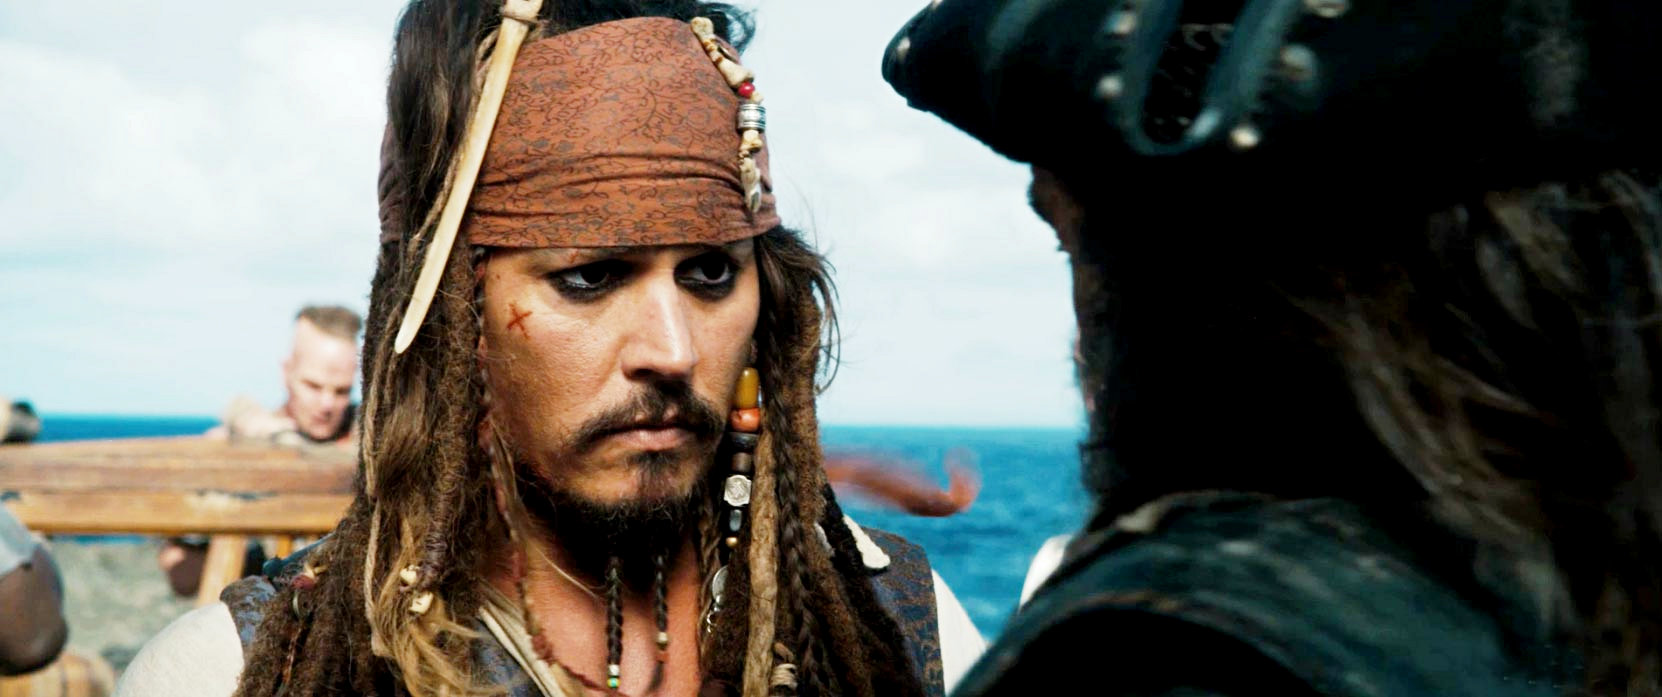 'Pirates of the Caribbean 5' Script Is Ready, Johnny Depp Is Not